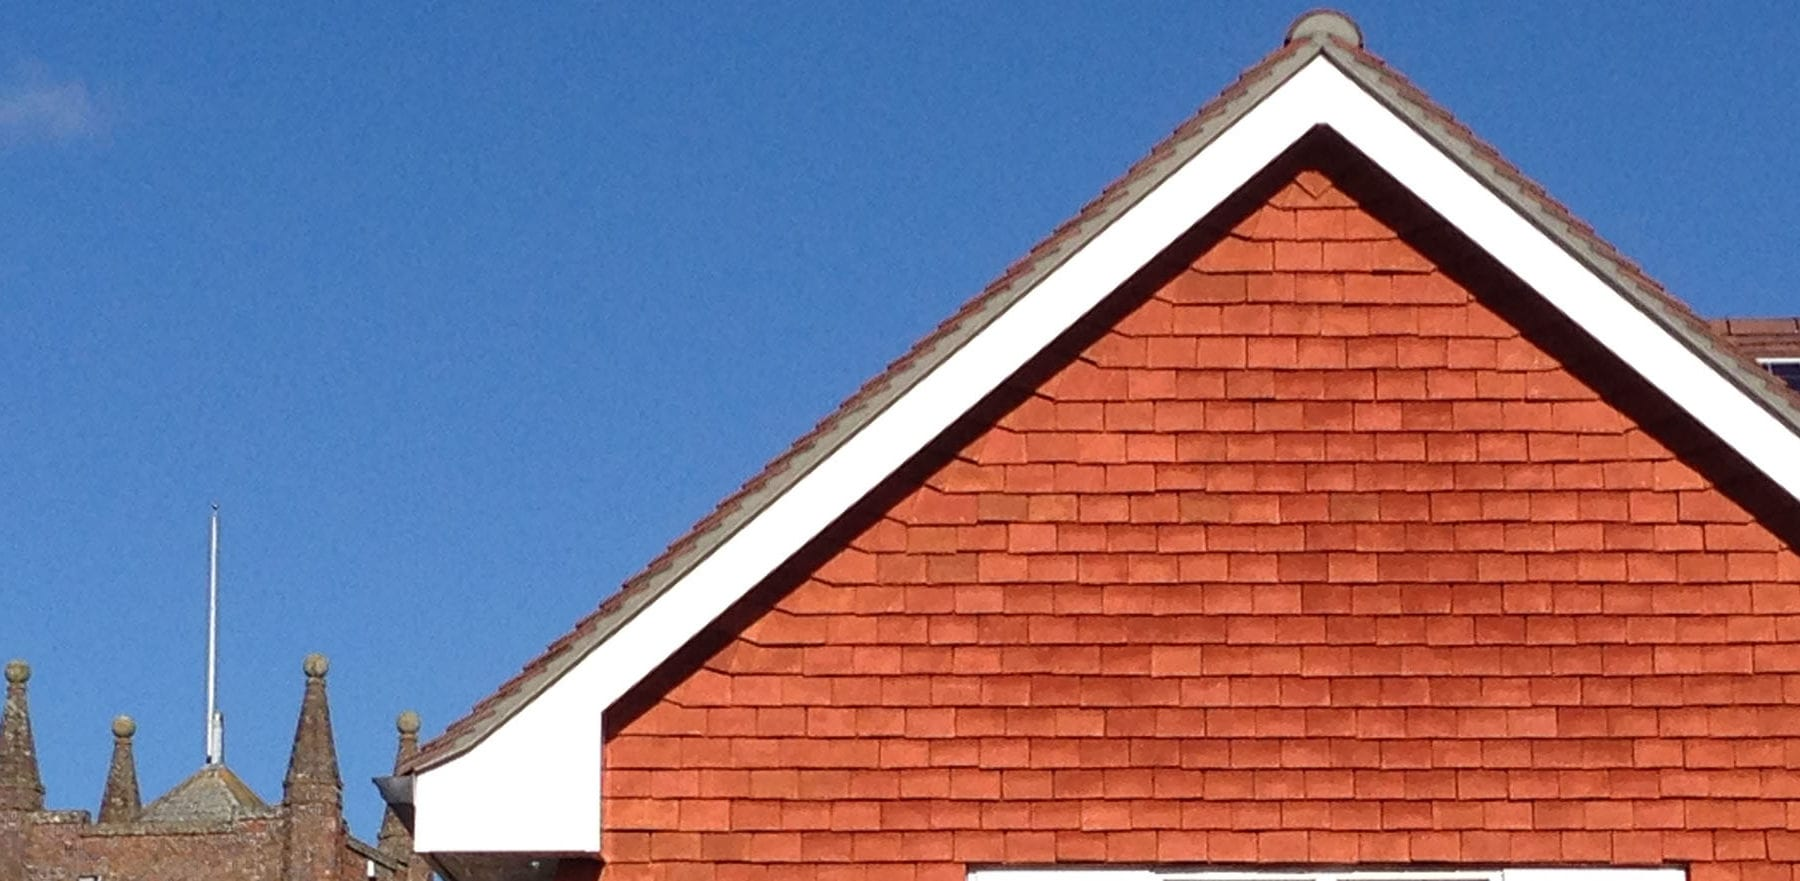 Lifestiles - Handcrafted Pentlow Clay Roof Tiles - Crondall, England 3